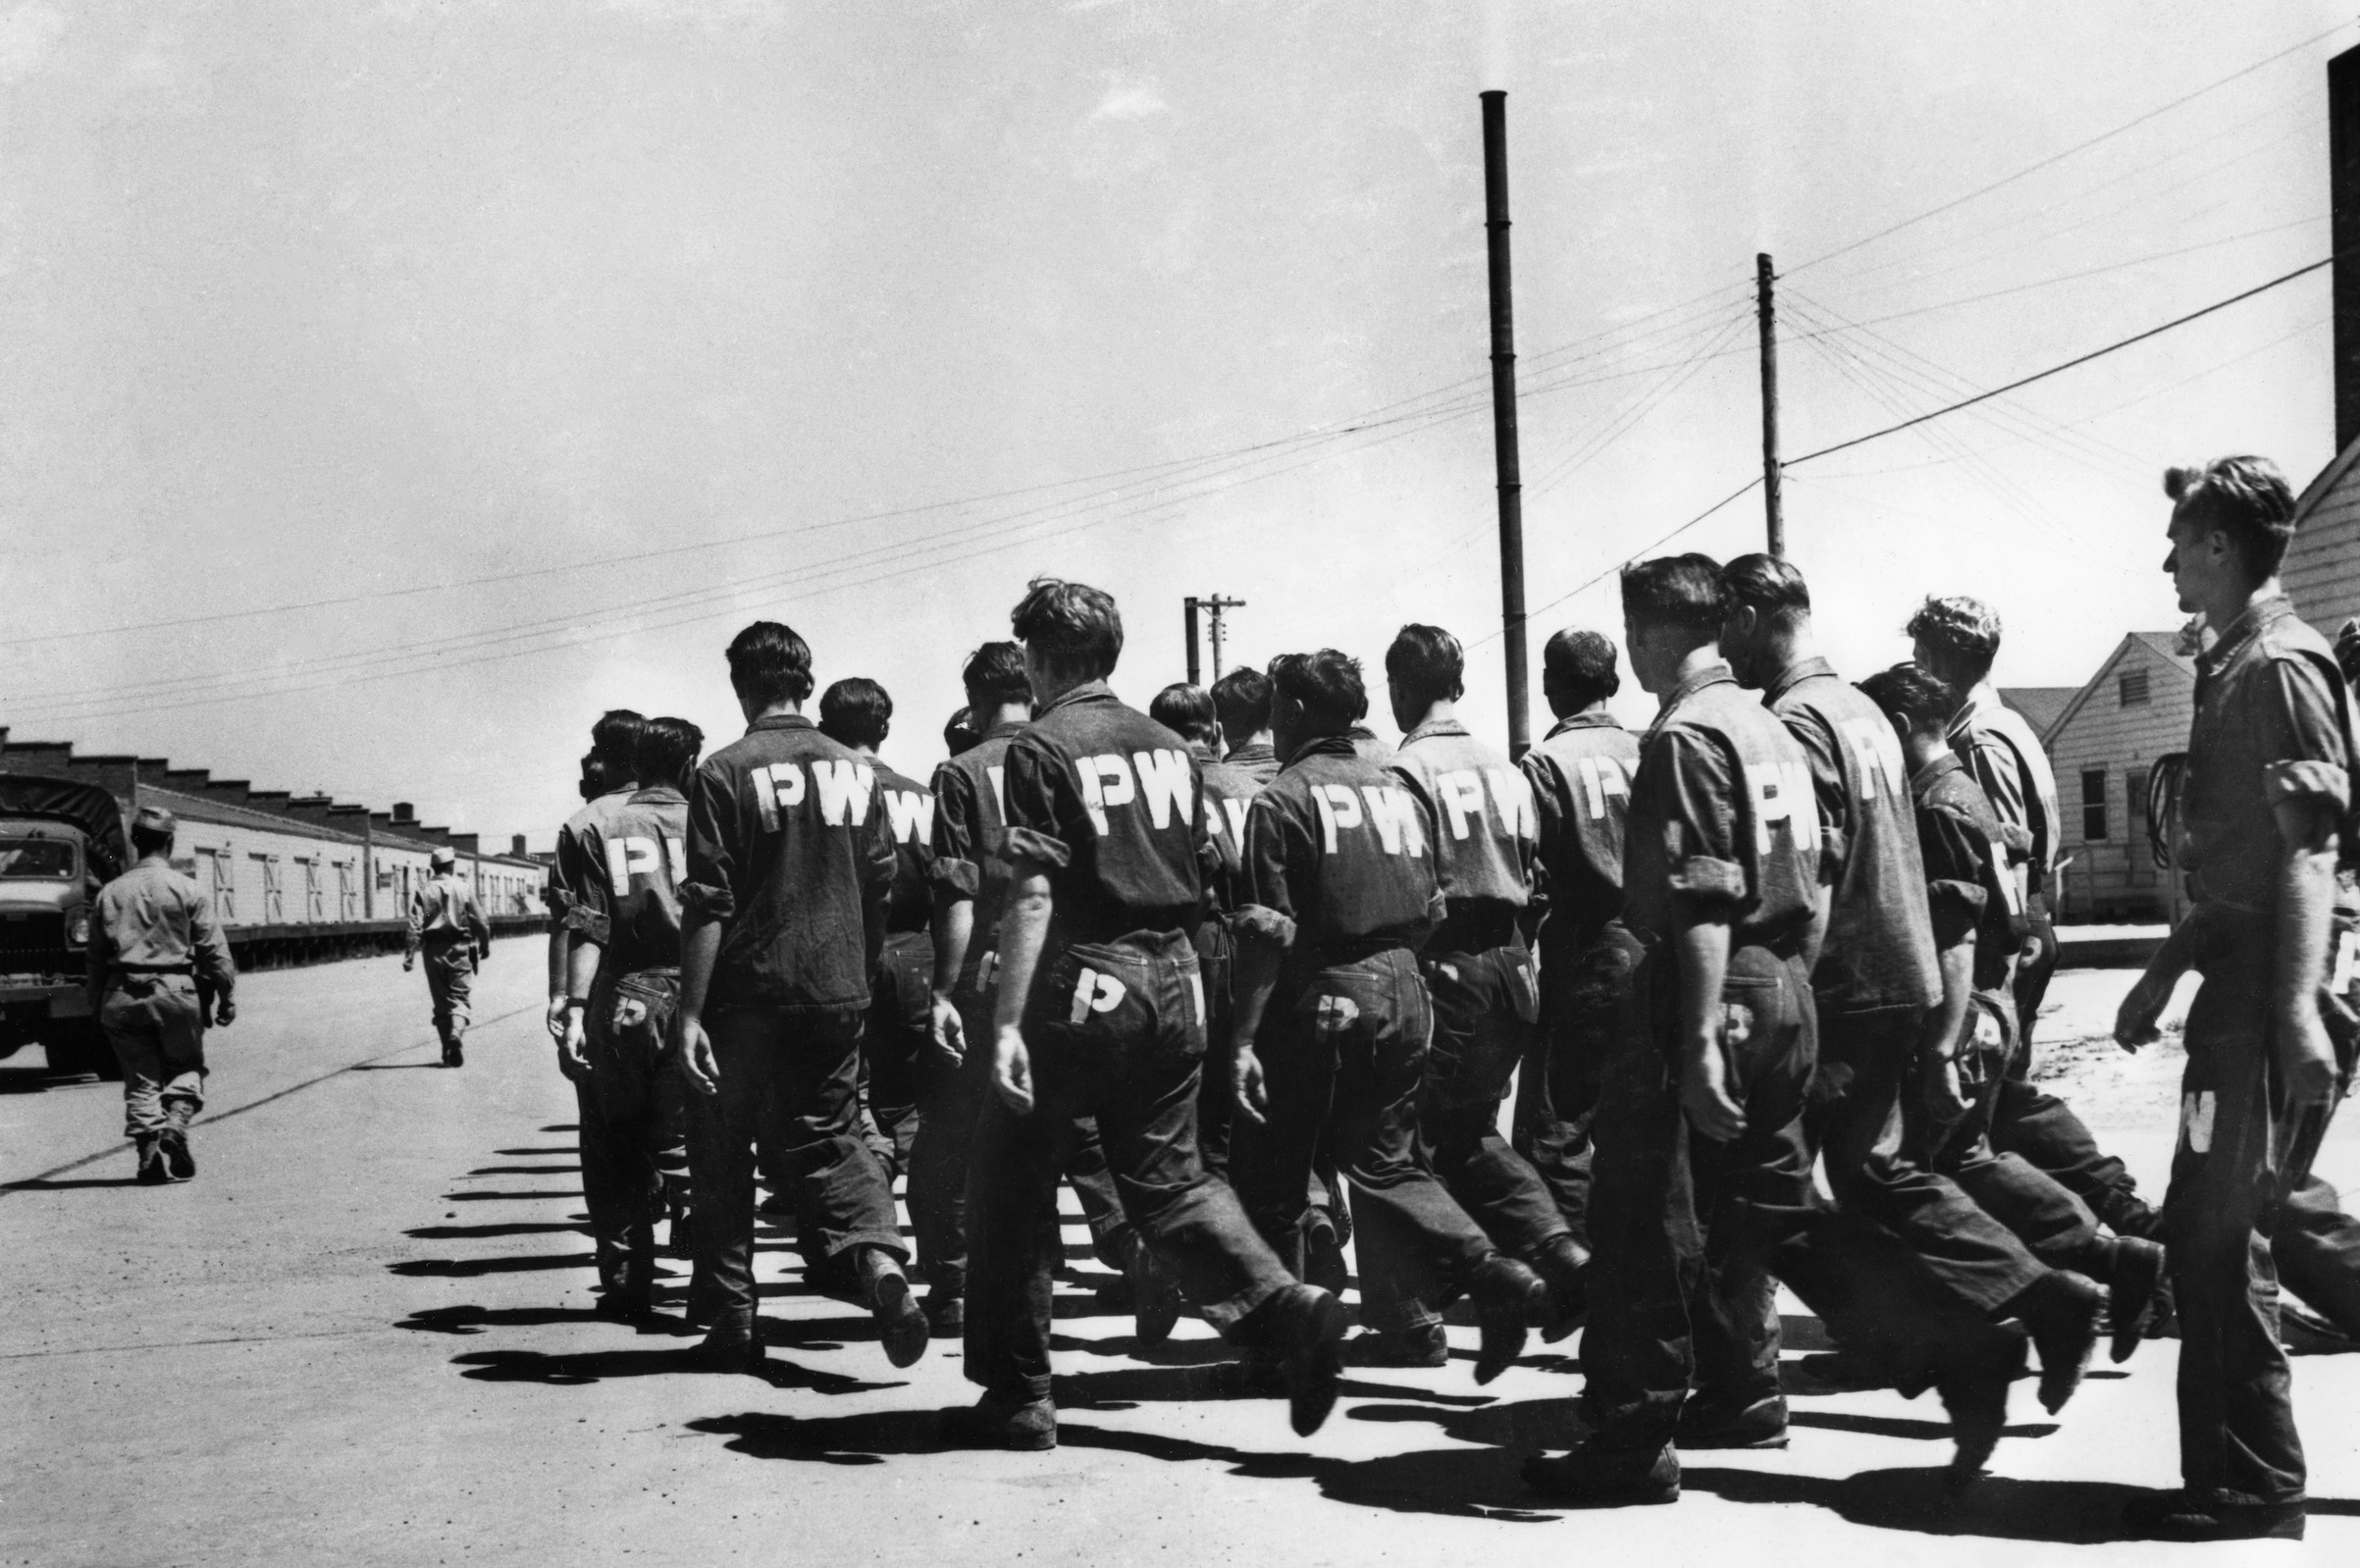 German prisoners at Camp Carson in Colorado sing as they march to the camp laundry in 1943